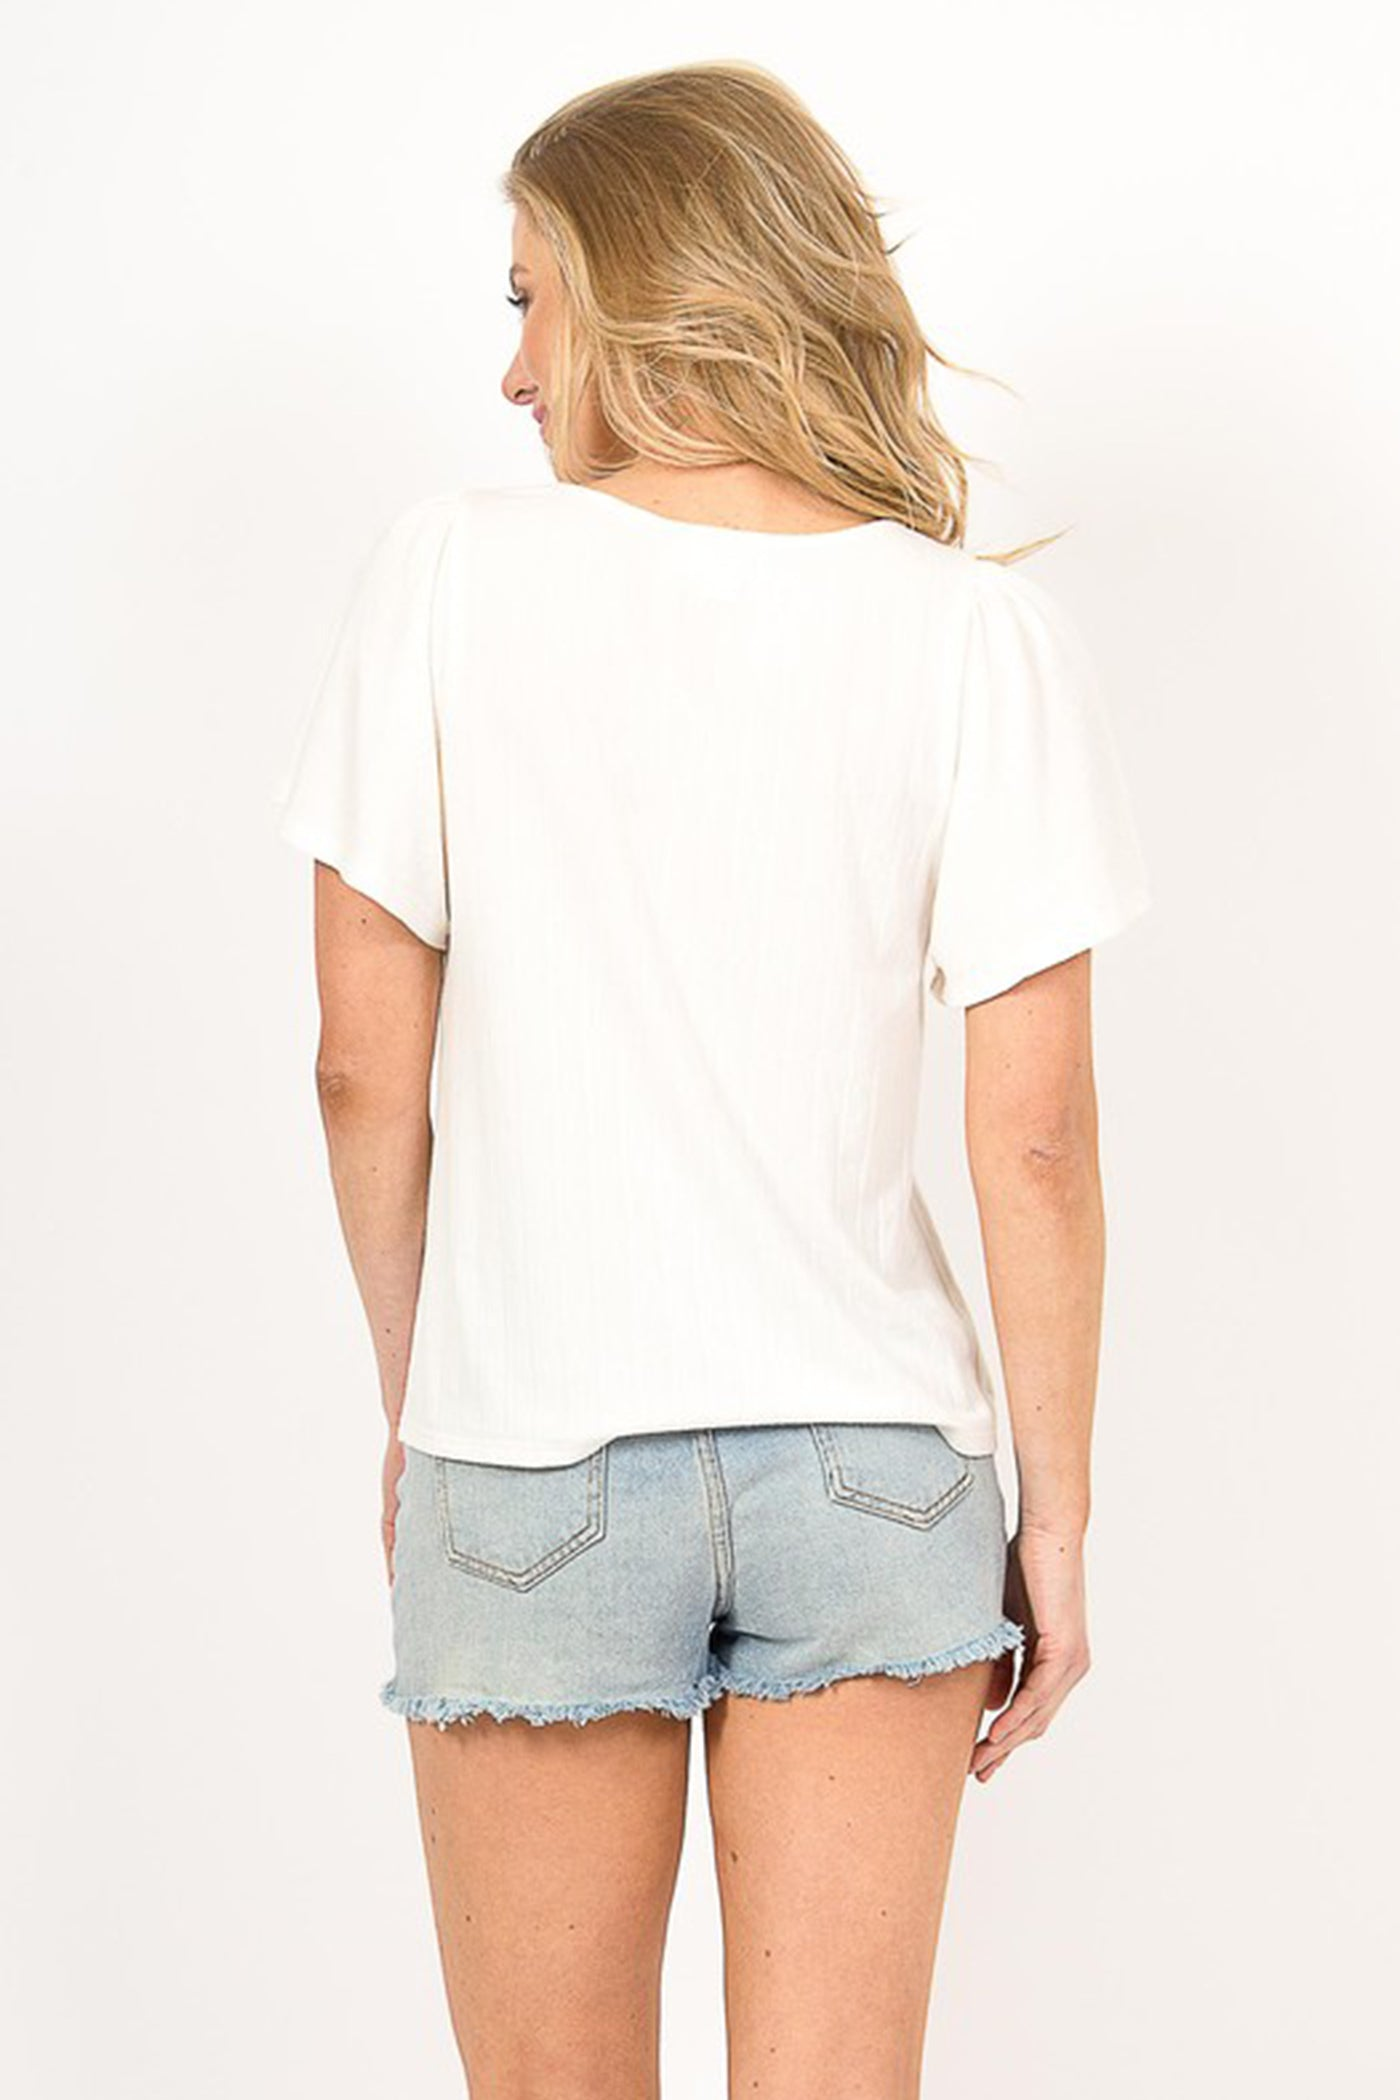 Best Day Ever Short Sleeve Top